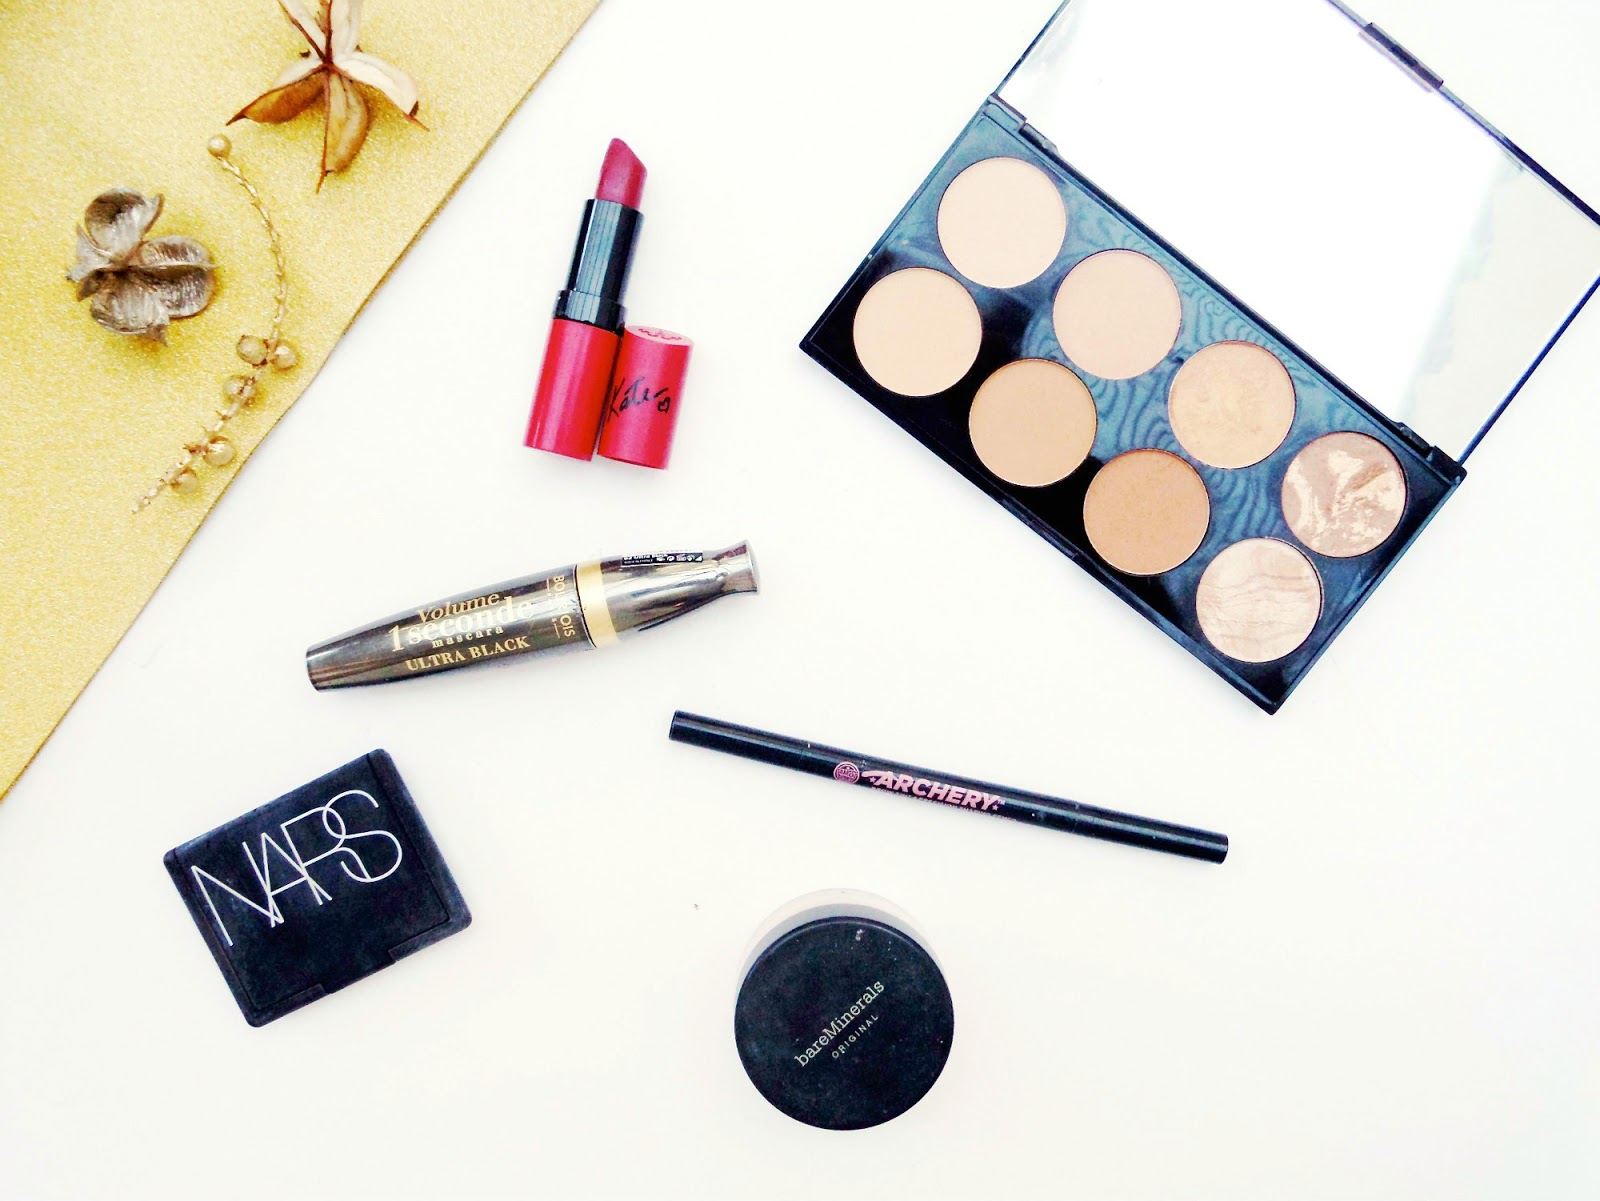 My Top Beauty Products of 2014